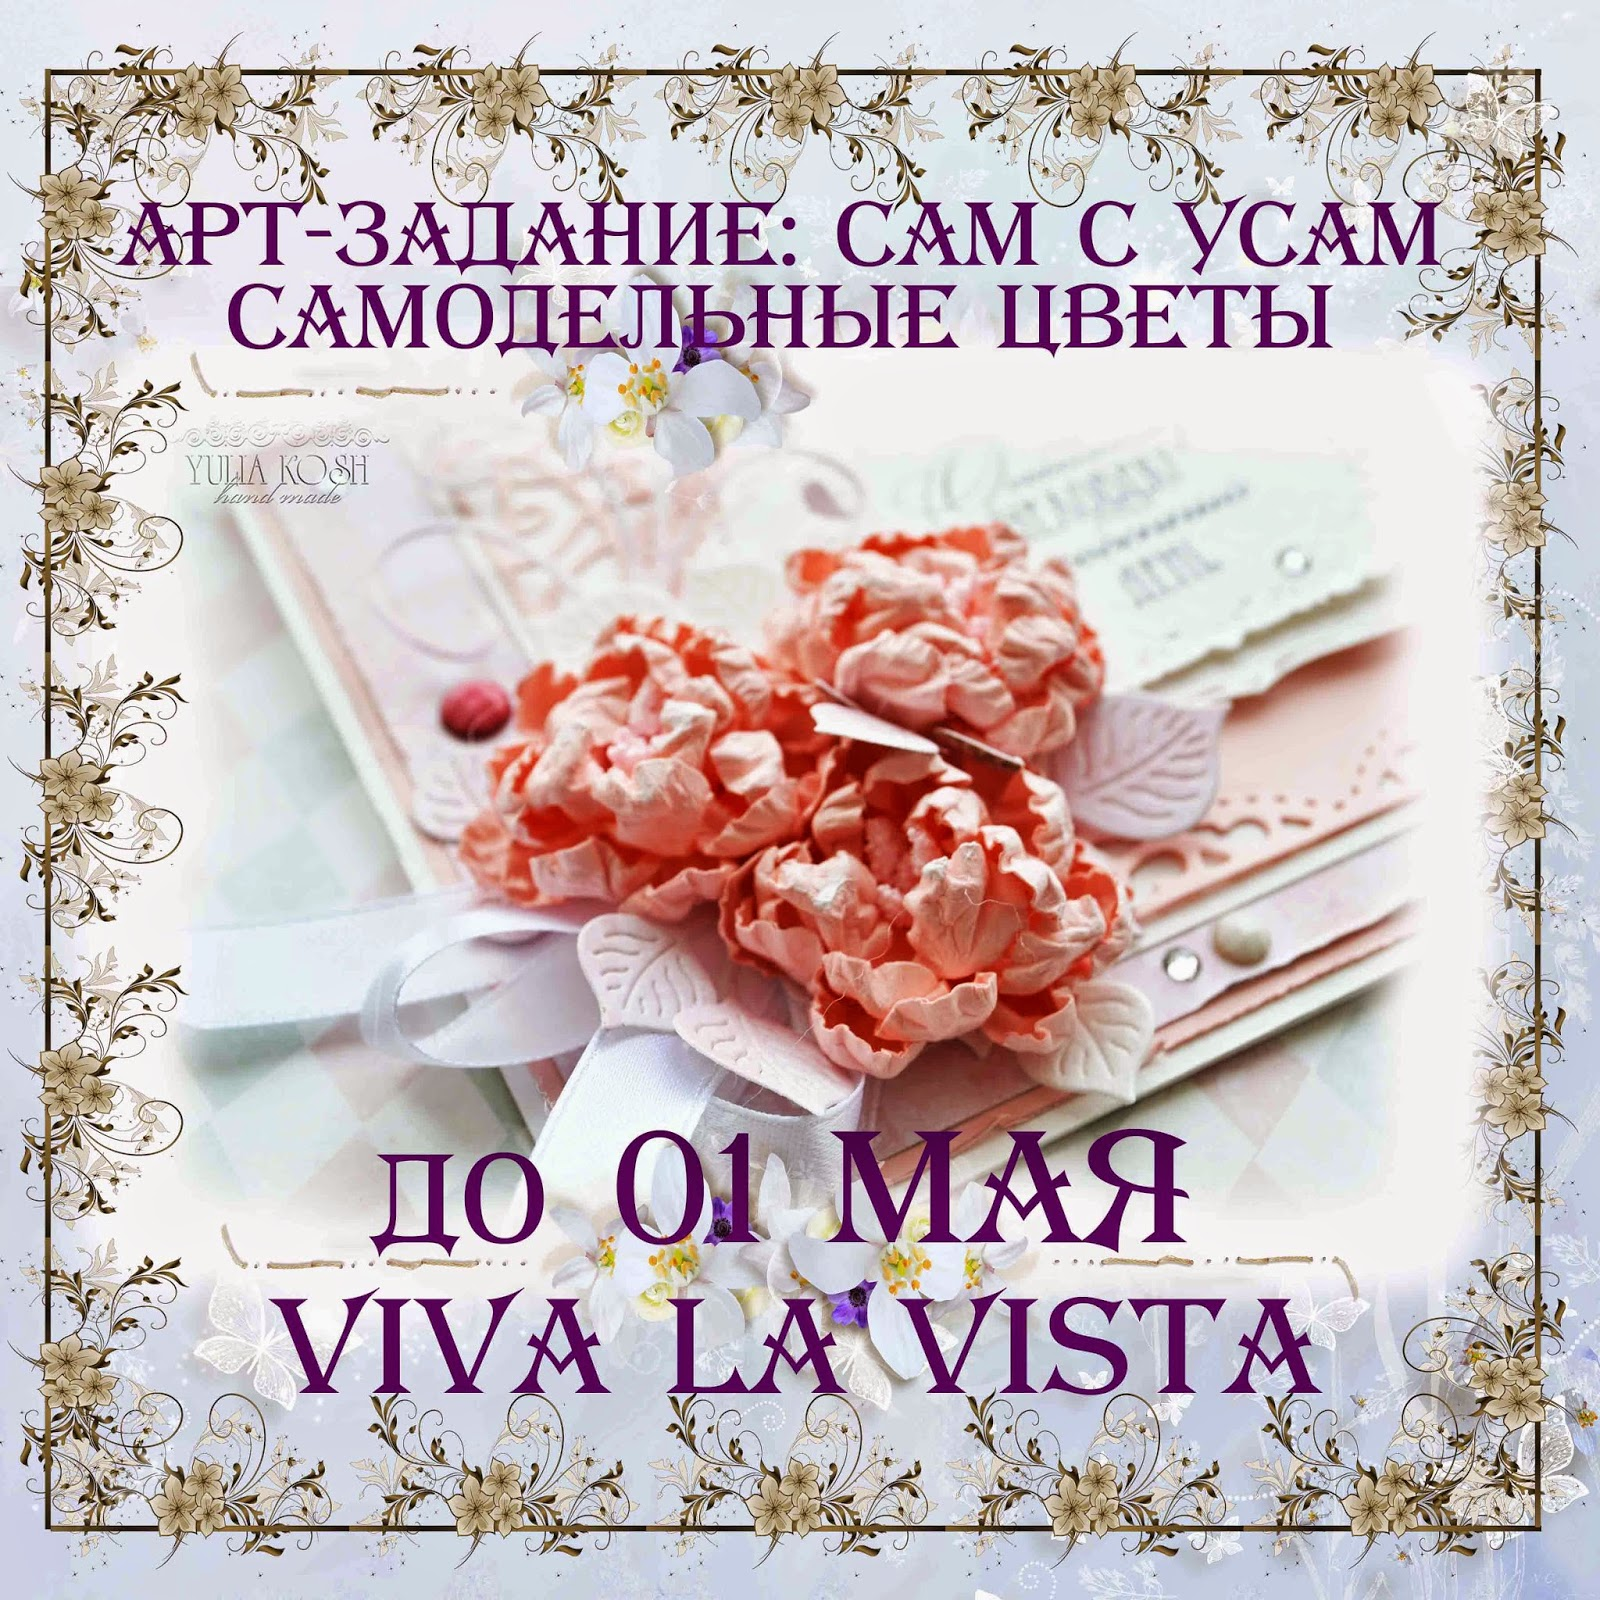 http://vlvista.blogspot.ru/2015/03/blog-post_23.html